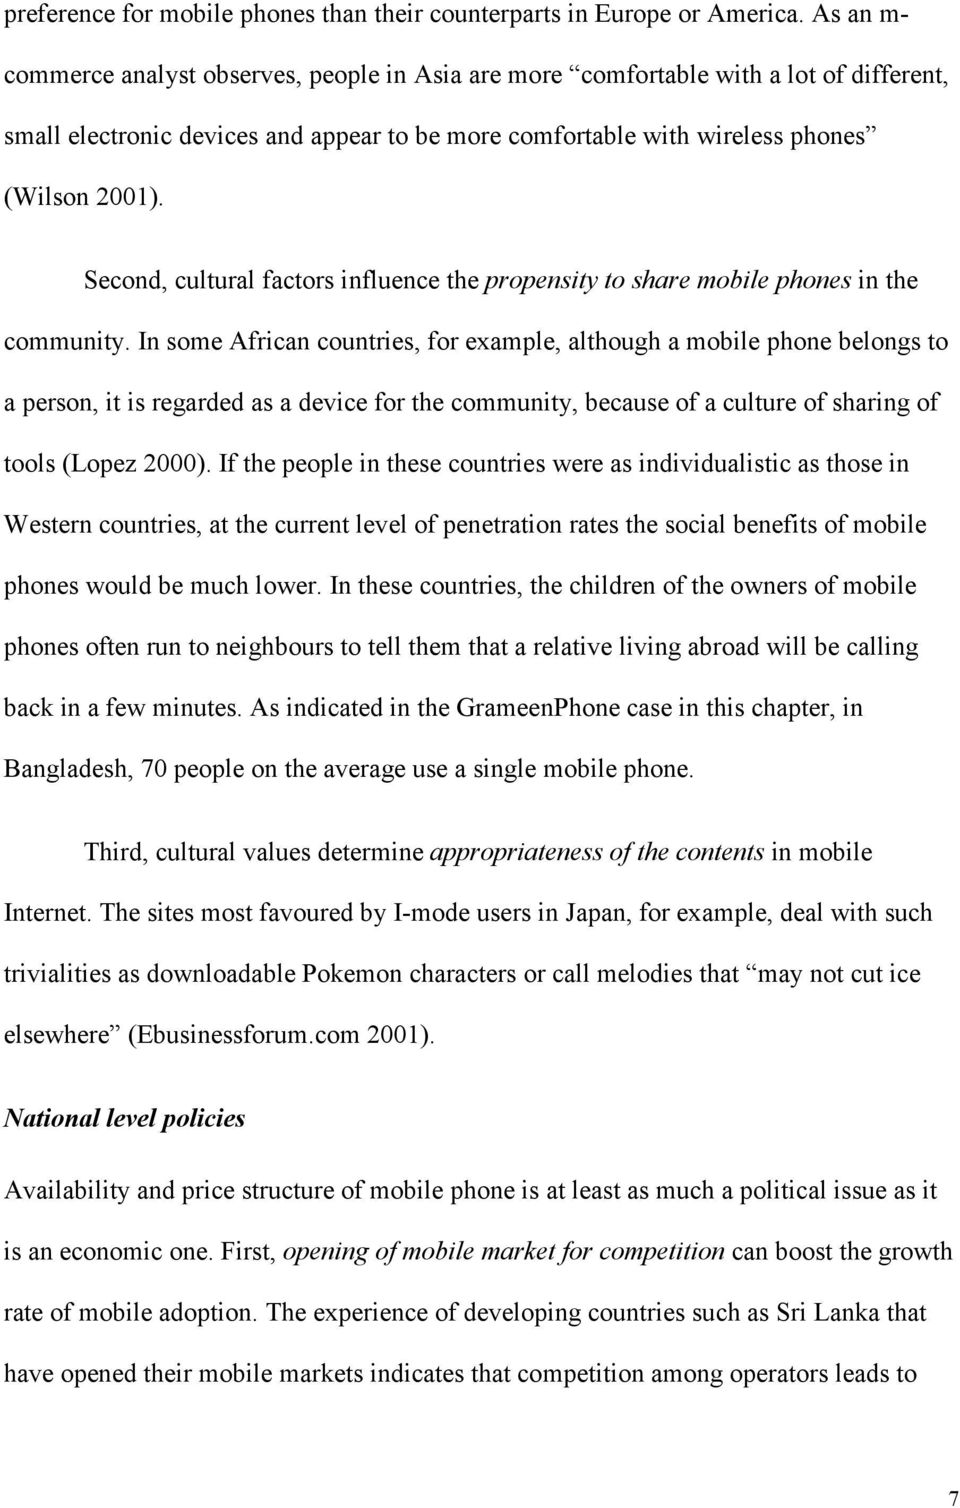 Second, cultural factors influence the propensity to share mobile phones in the community.